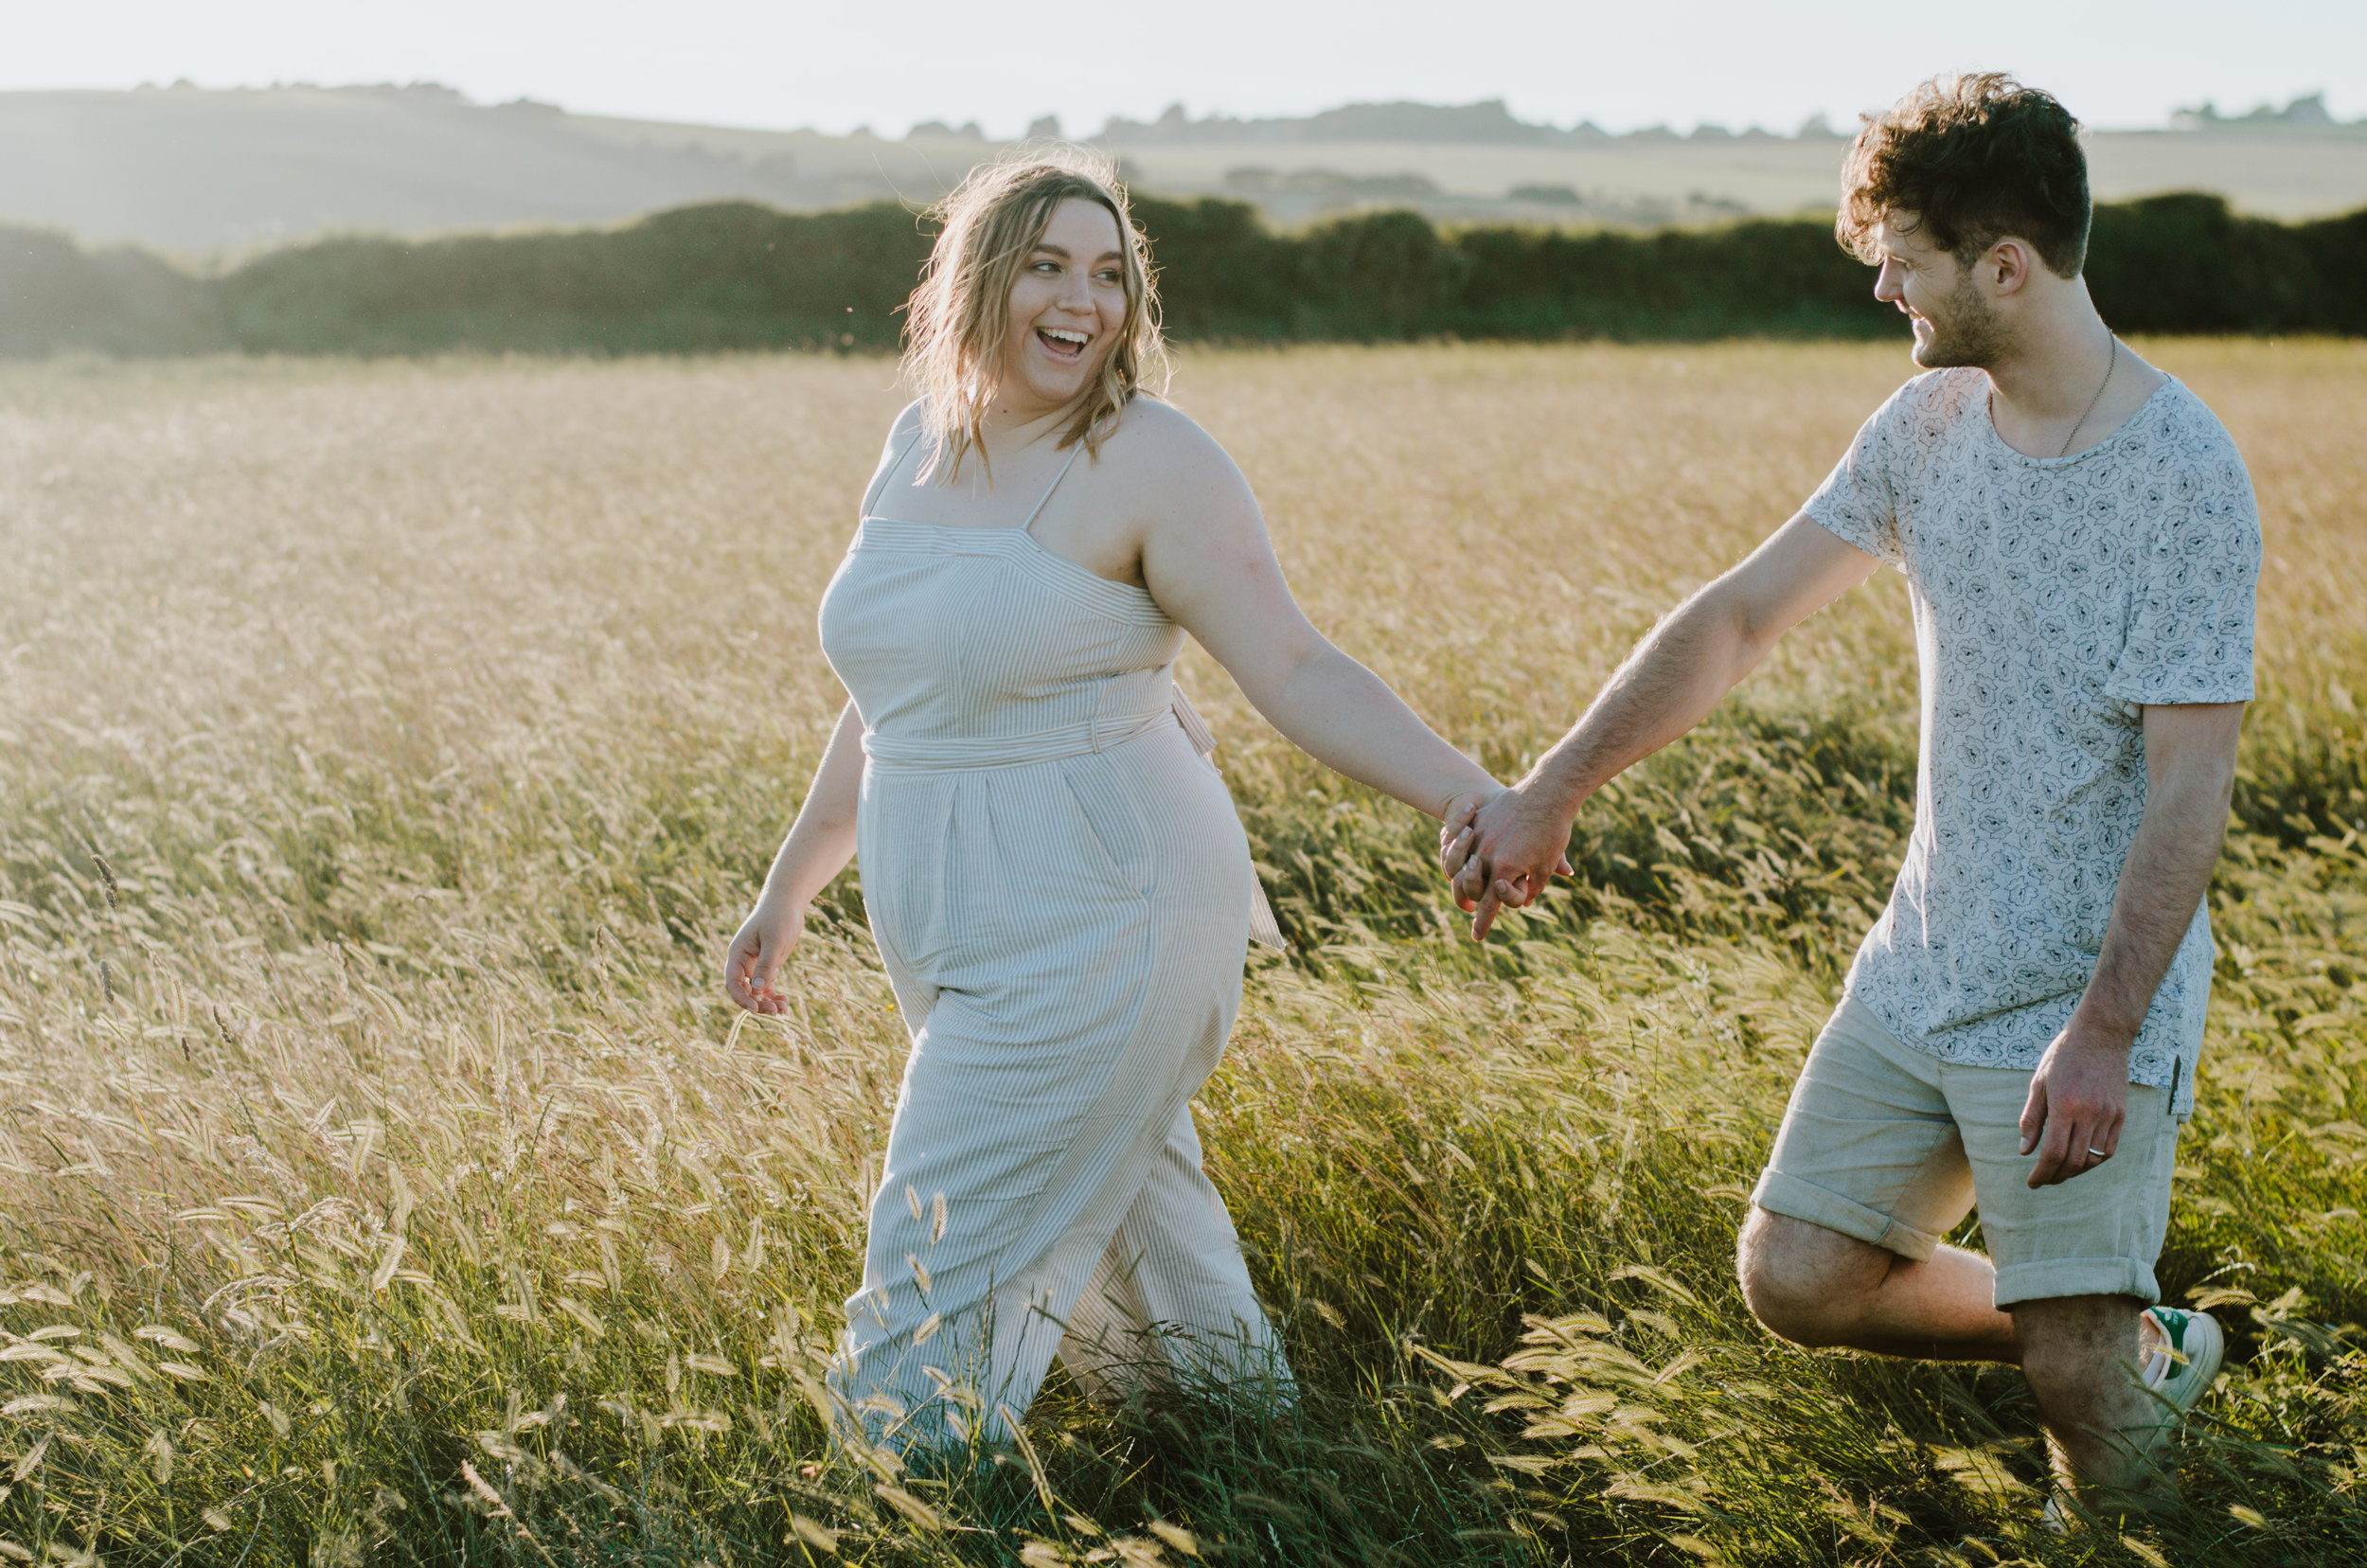 Rebecca & Dougie - Cuckmere Haven - Couple Session - Aiste Saulyte Photography-5.jpg